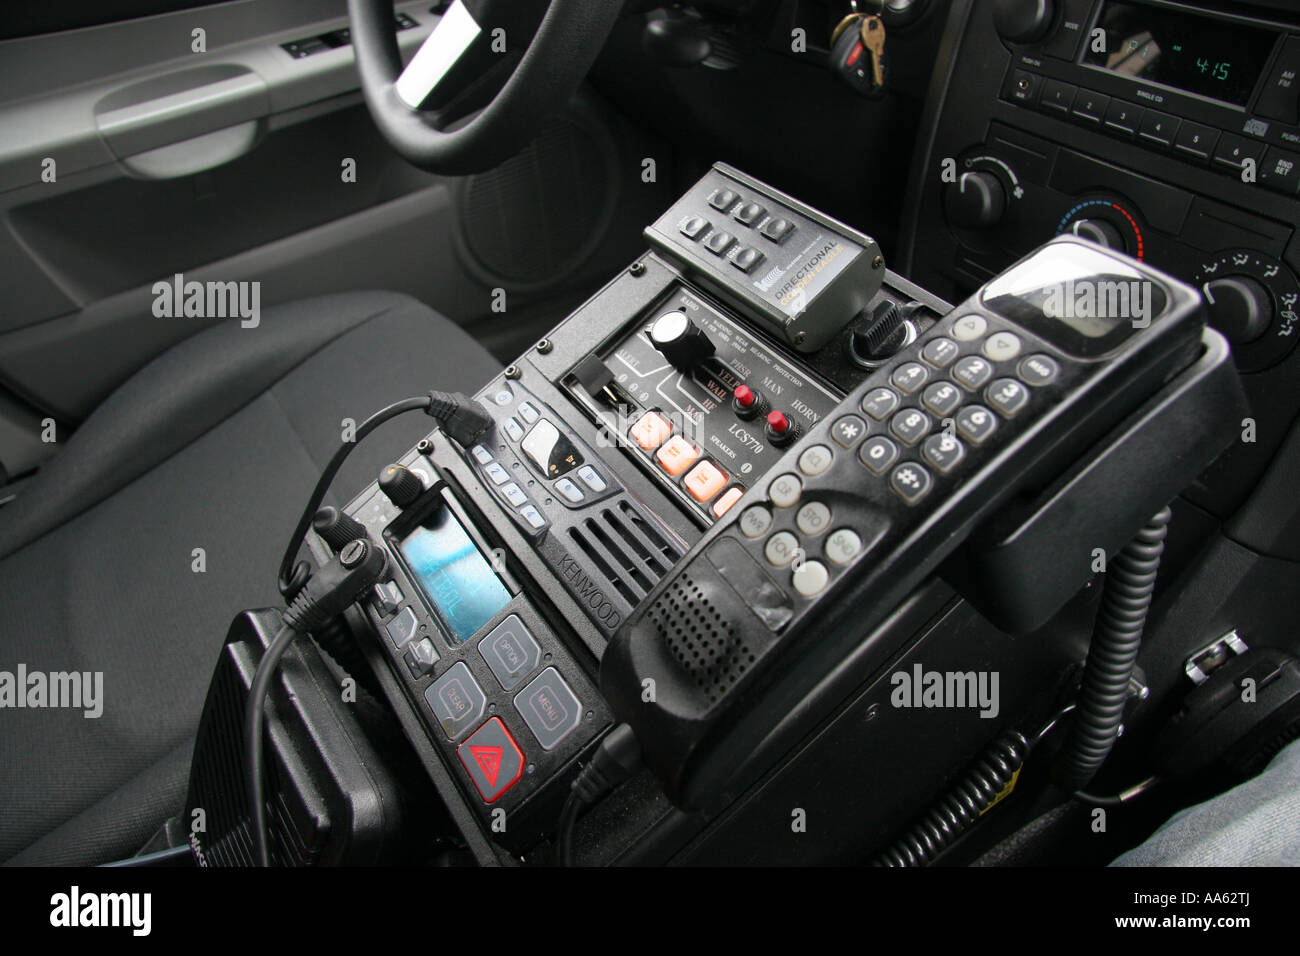 police car interior images galleries with a bite. Black Bedroom Furniture Sets. Home Design Ideas